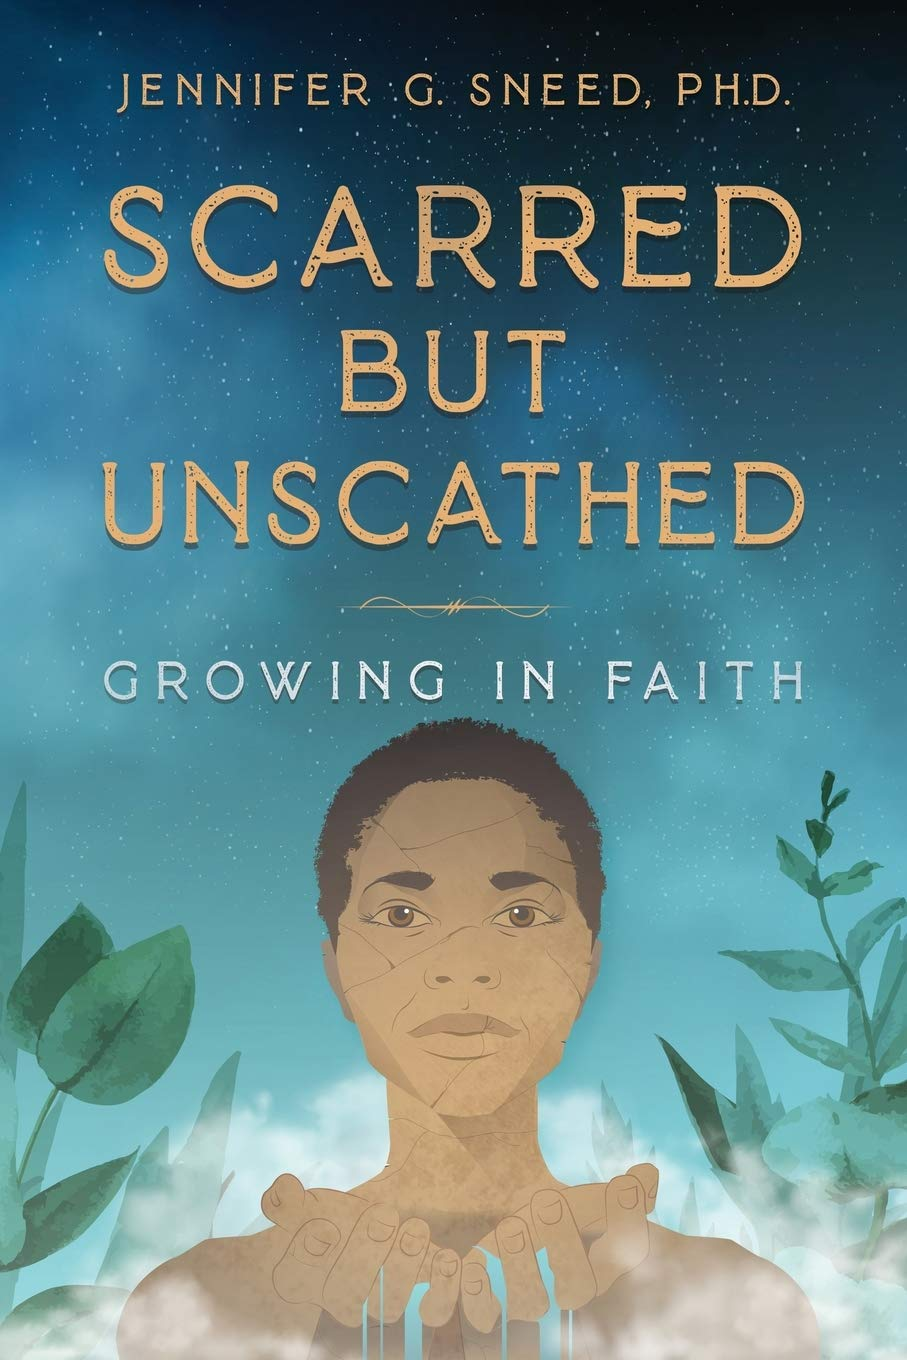 Scarred But Unscathed Growing in Faith | Mindstir Media Book Cover